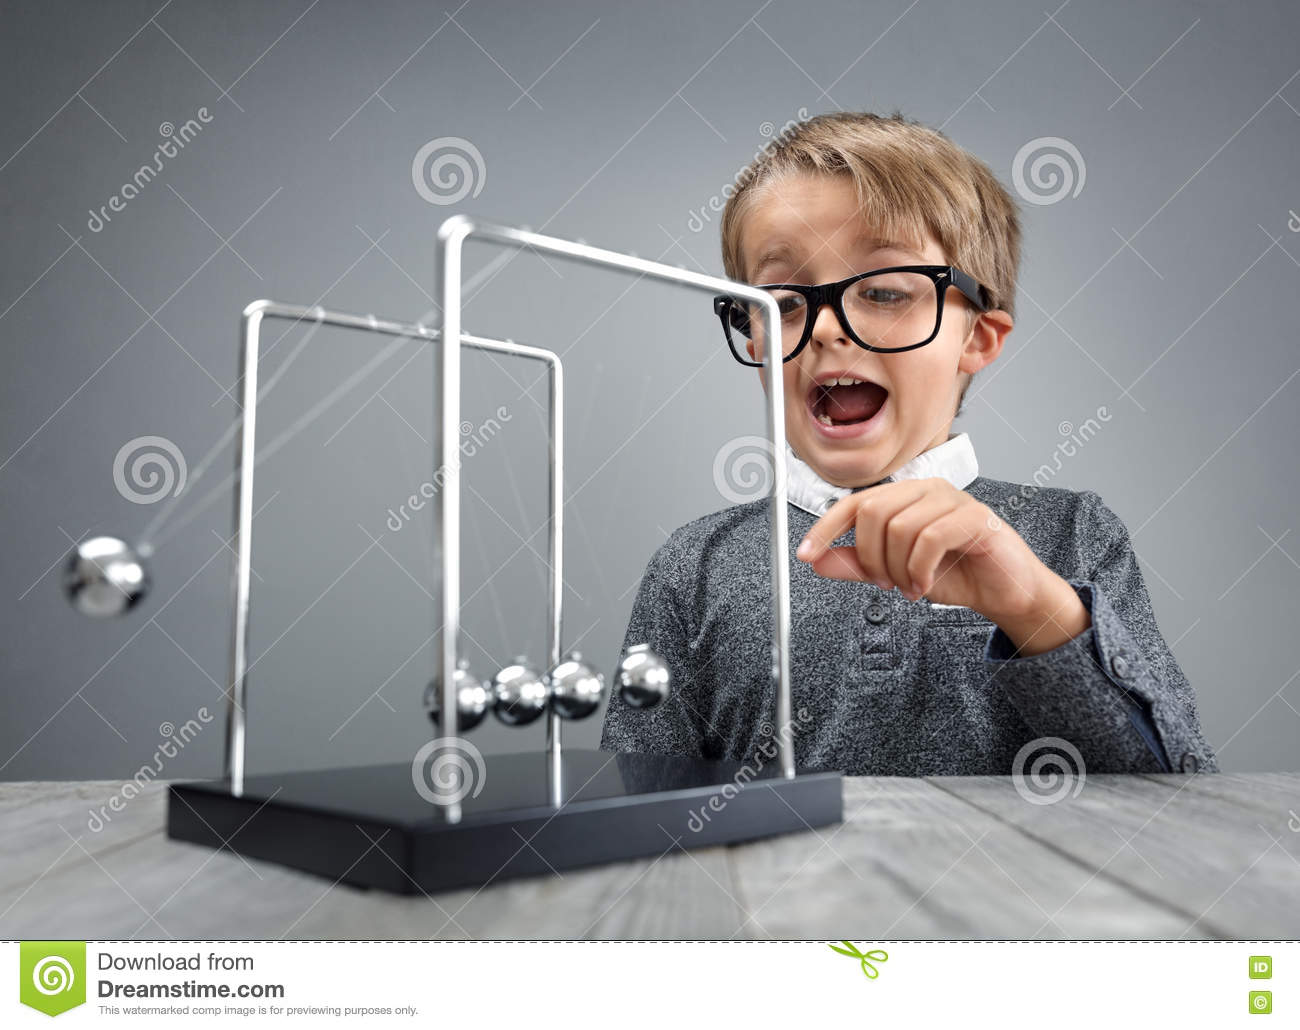 Physics and science education boy with Newton s cradle